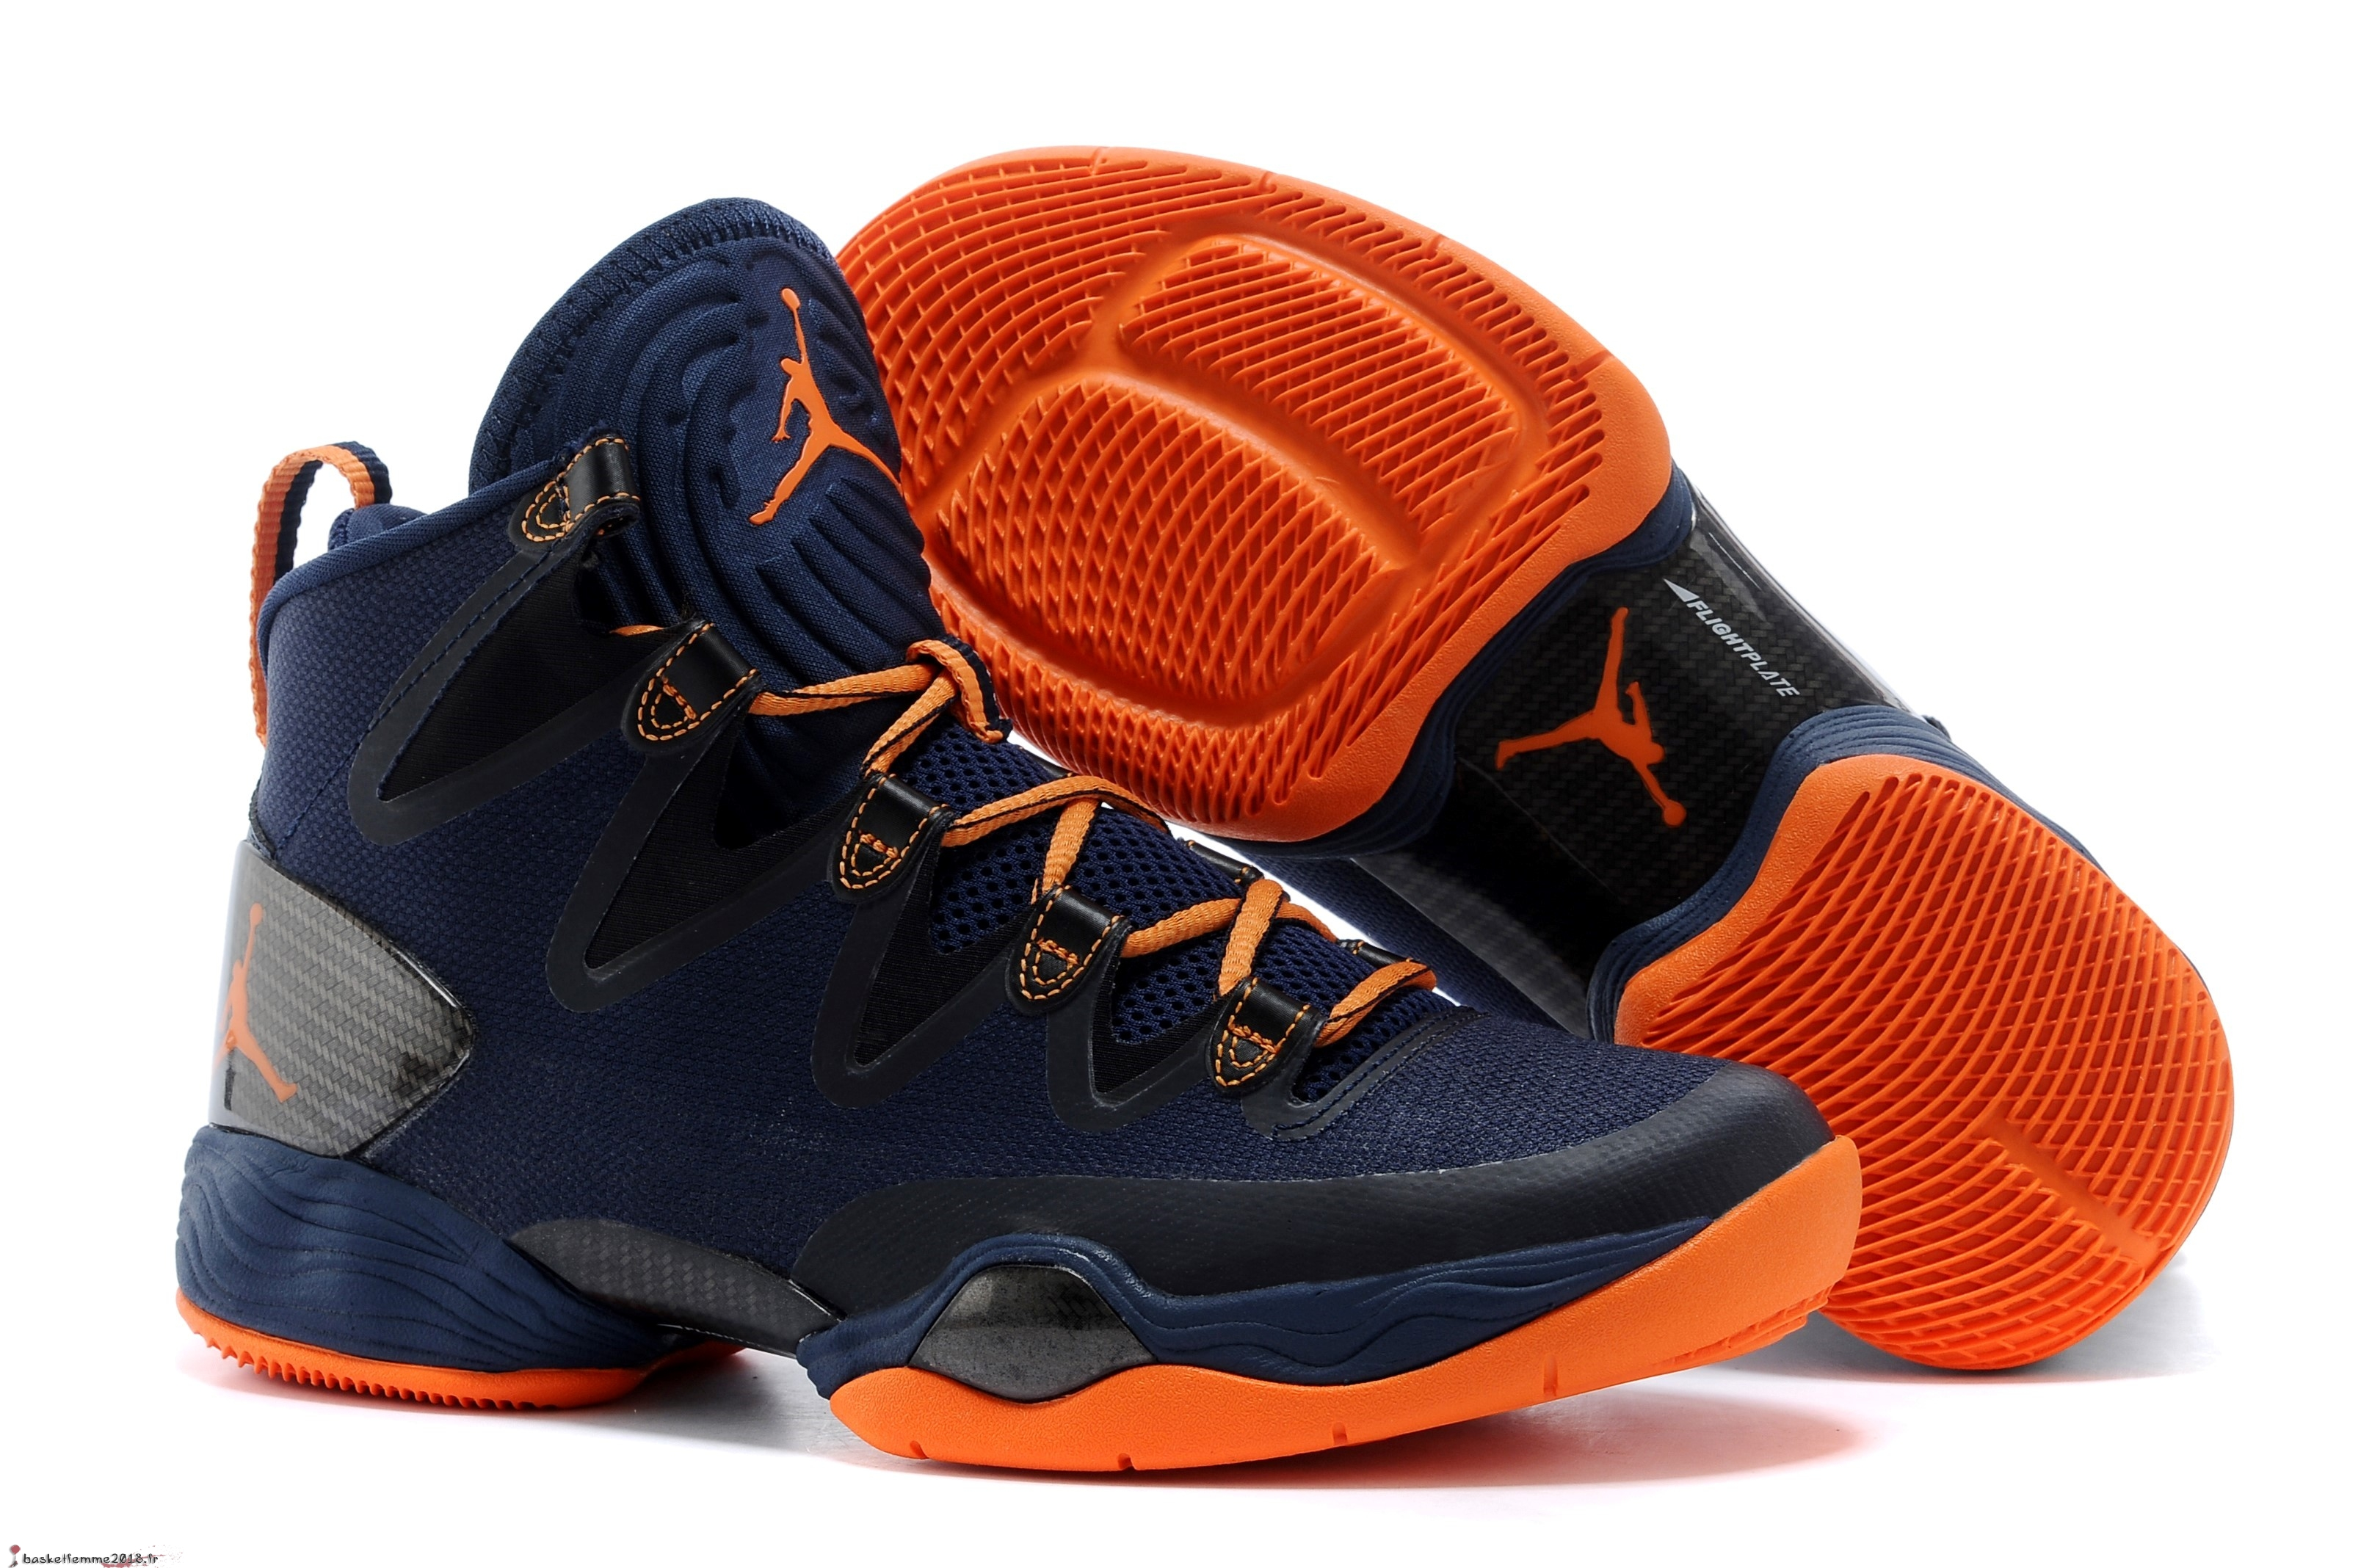 Air Jordan 28 Homme Bleu Orange Chaussure de Basket